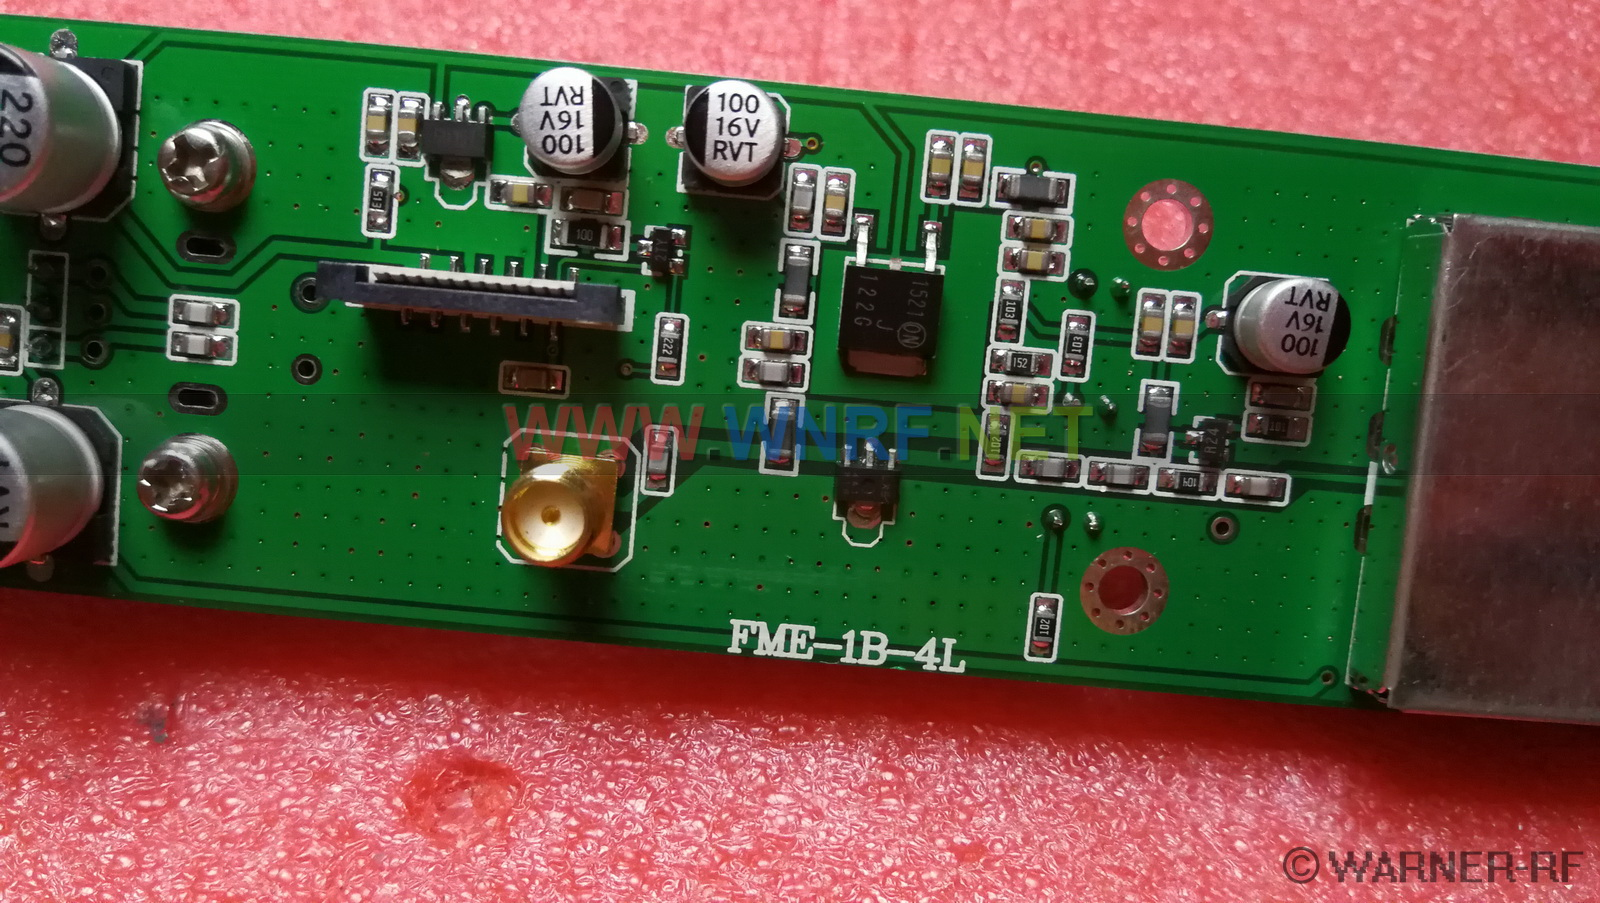 [FMA-600H] 600W FM stereo broadcast transmitter PCB KITS - Click Image to Close